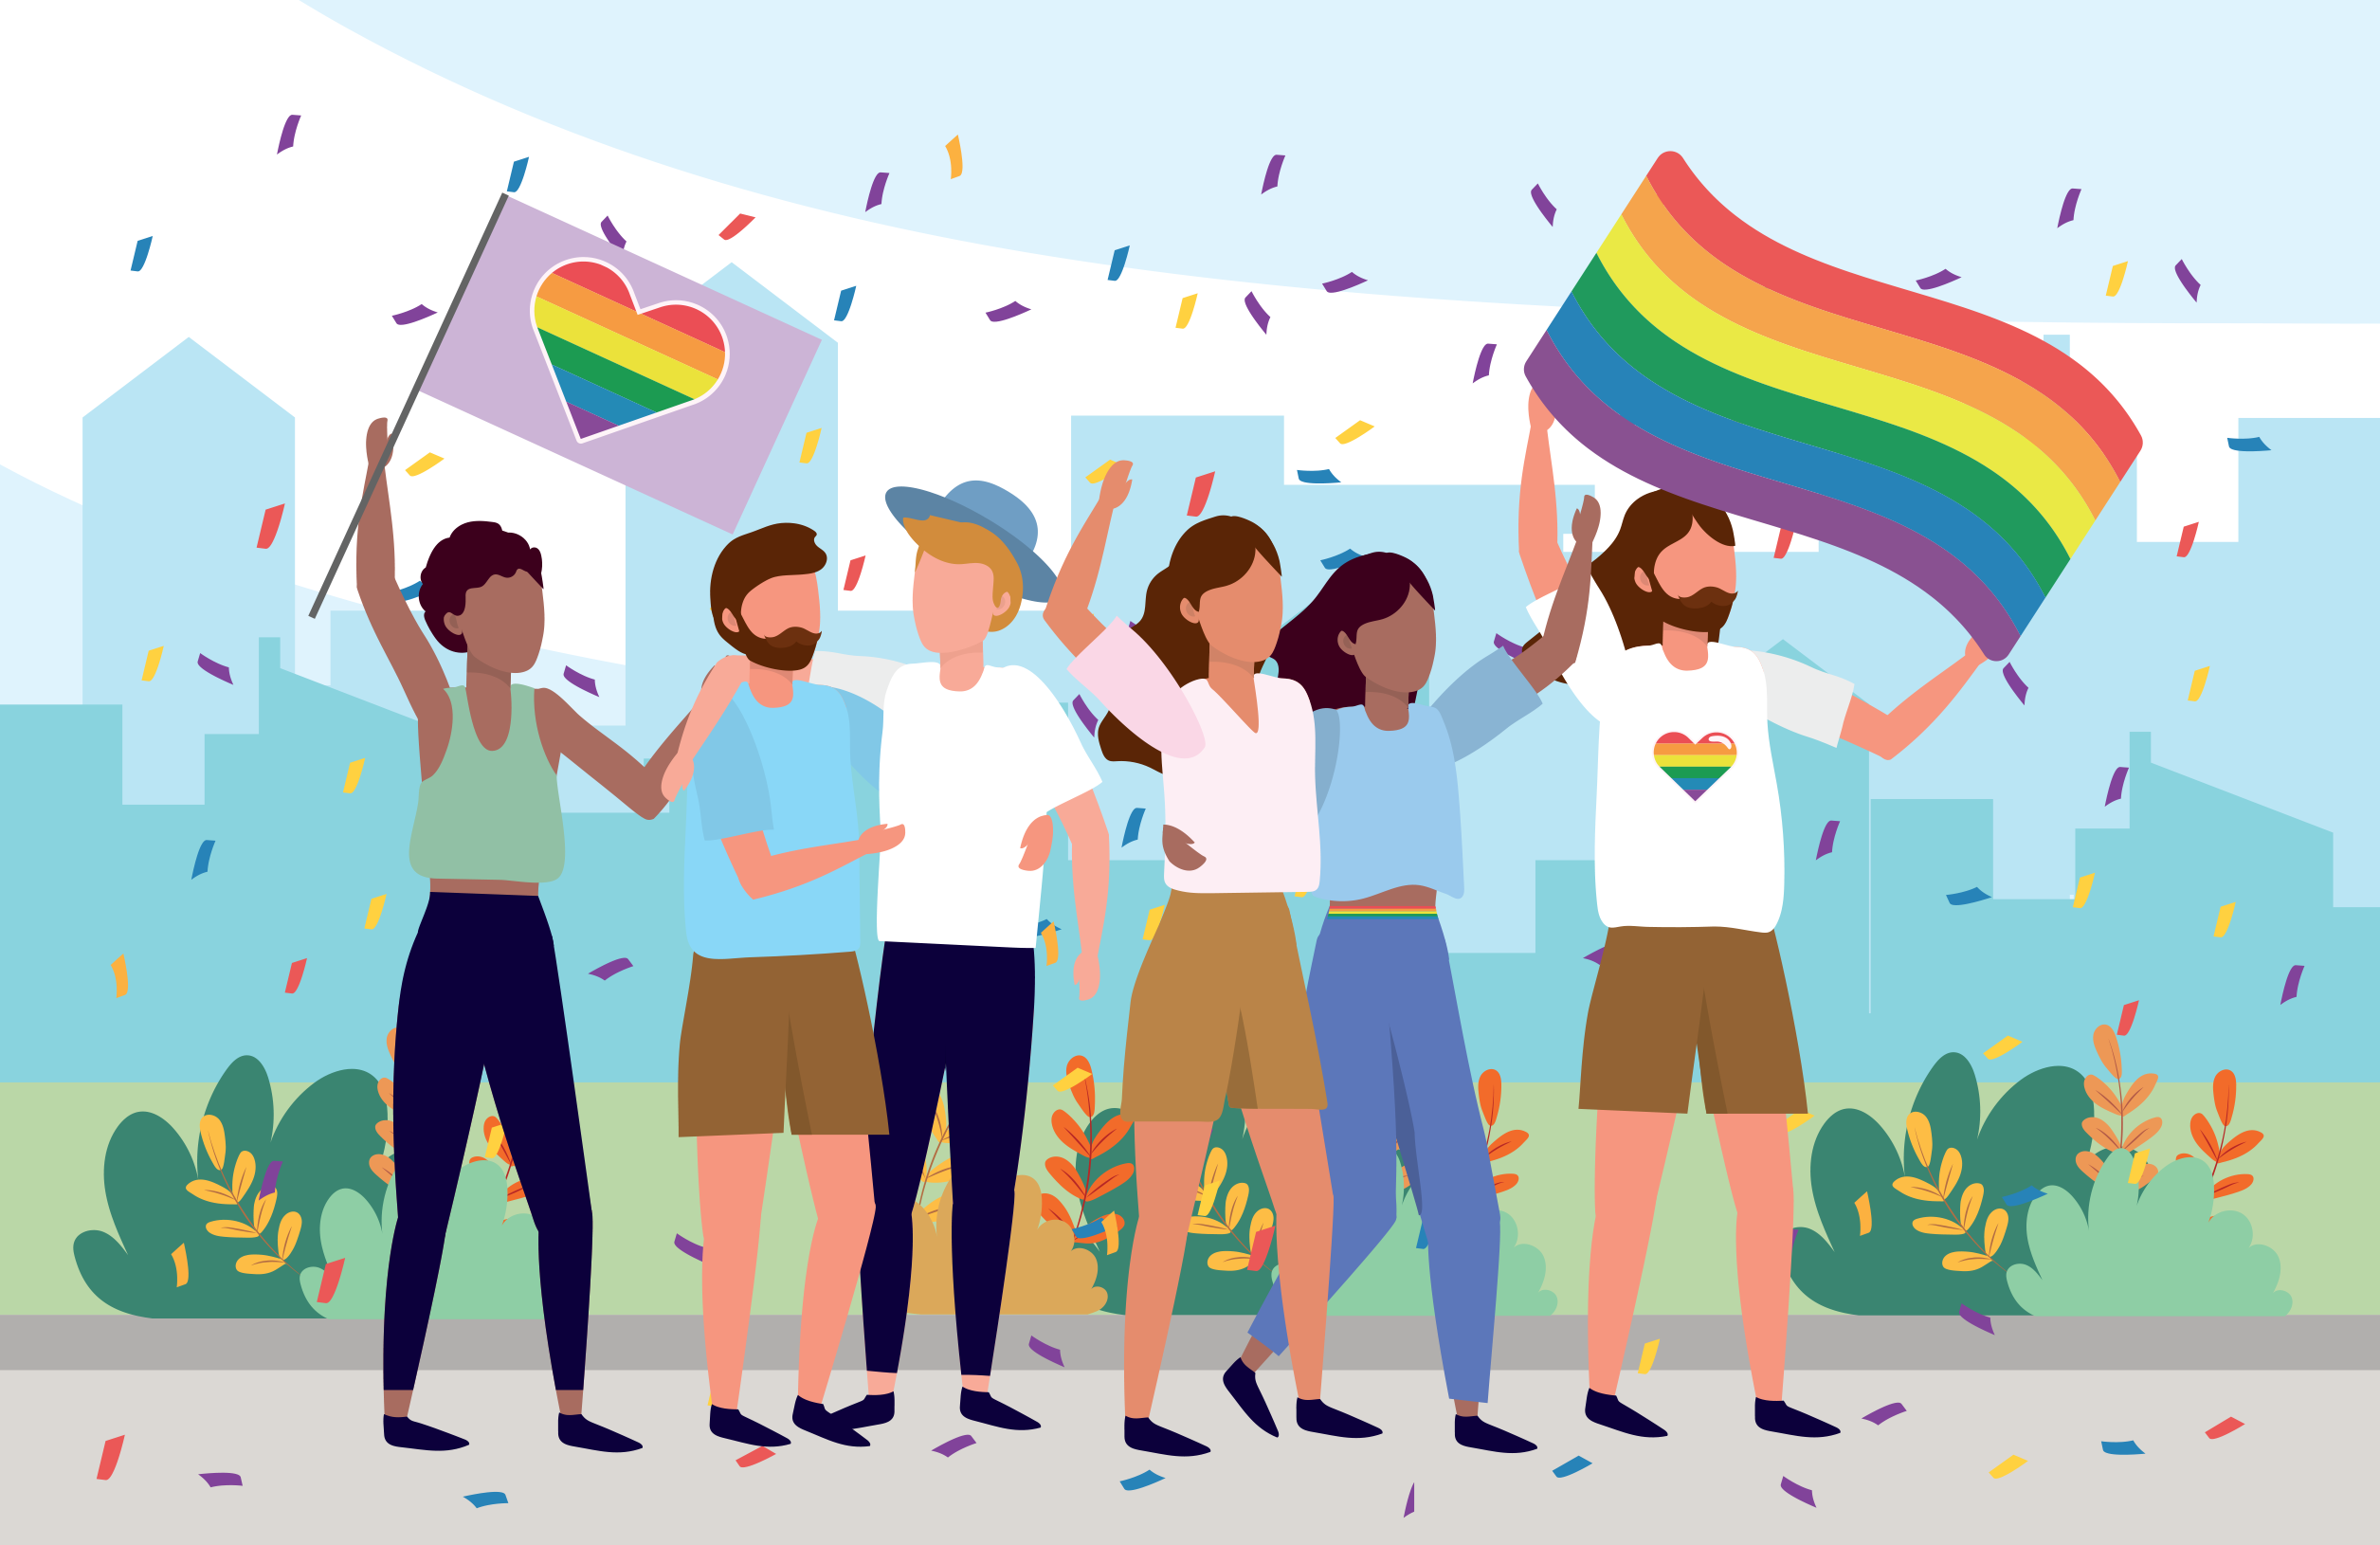 A cartoon of people celebrating pride with rainbow flags.